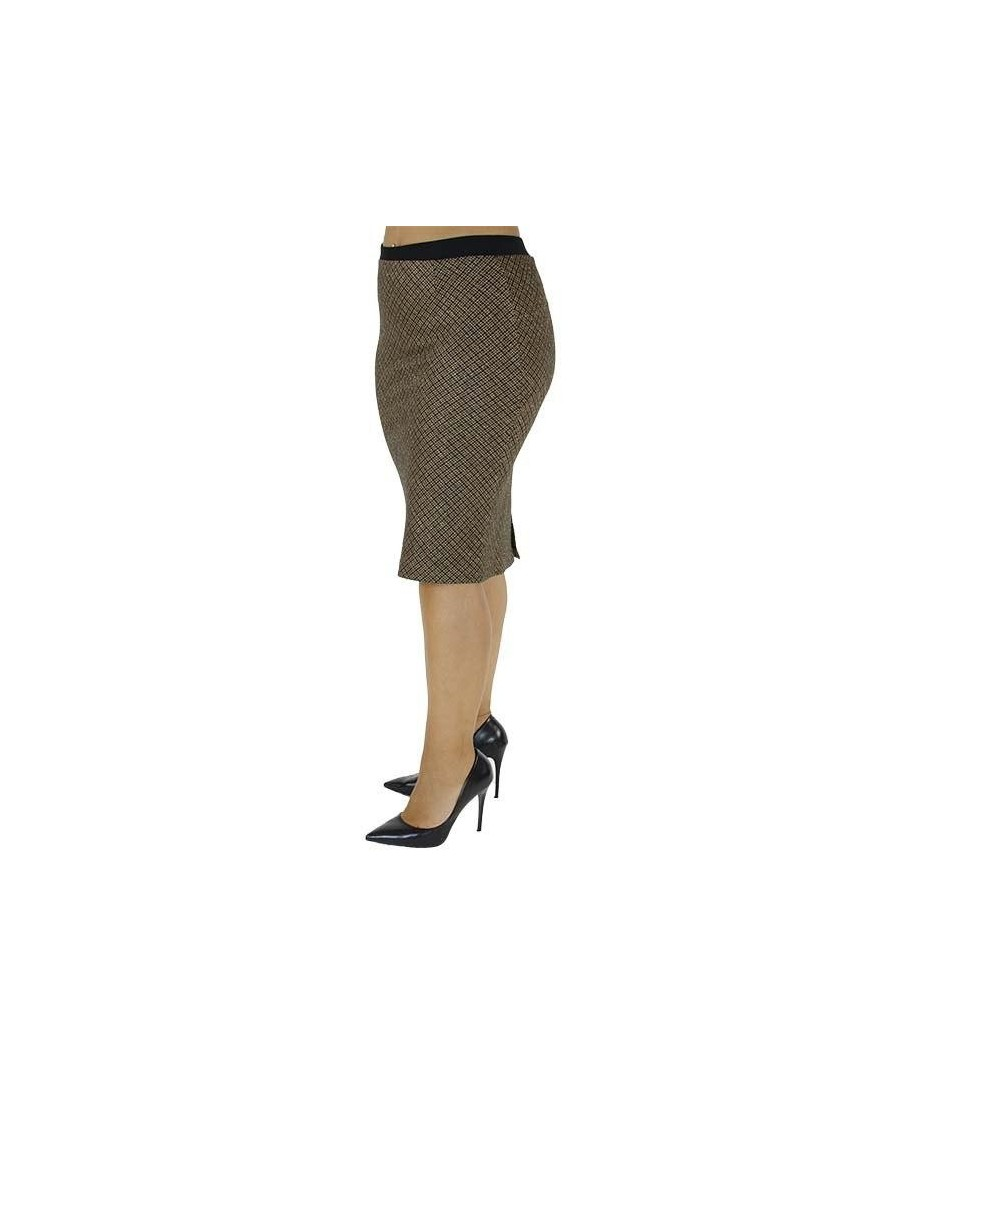 Gonna con Elastico 9123 Gonne donna Lesly LY9123 31,90€